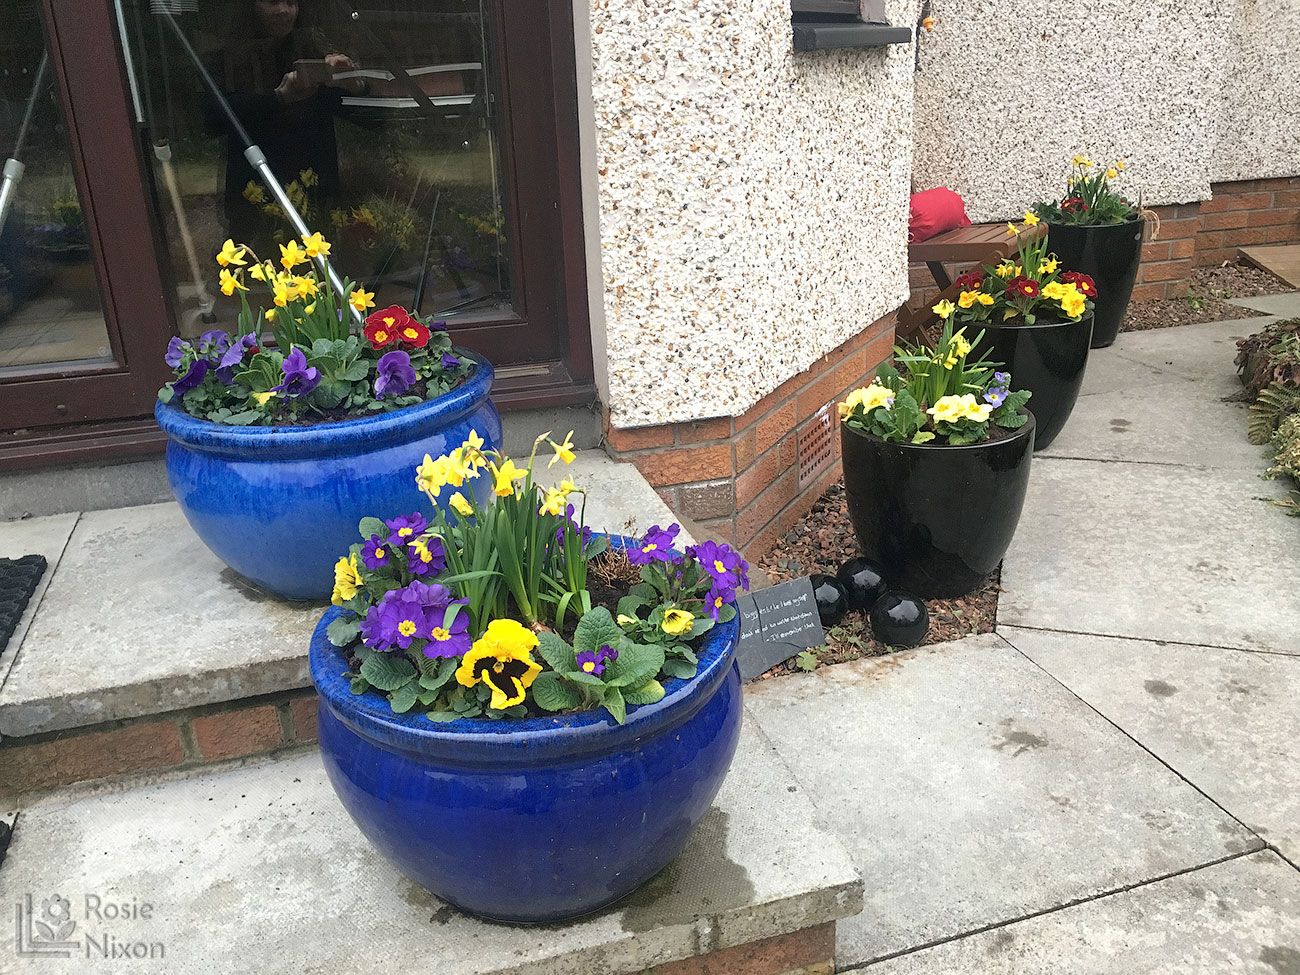 daffodils, primroses and pansies in planted containers